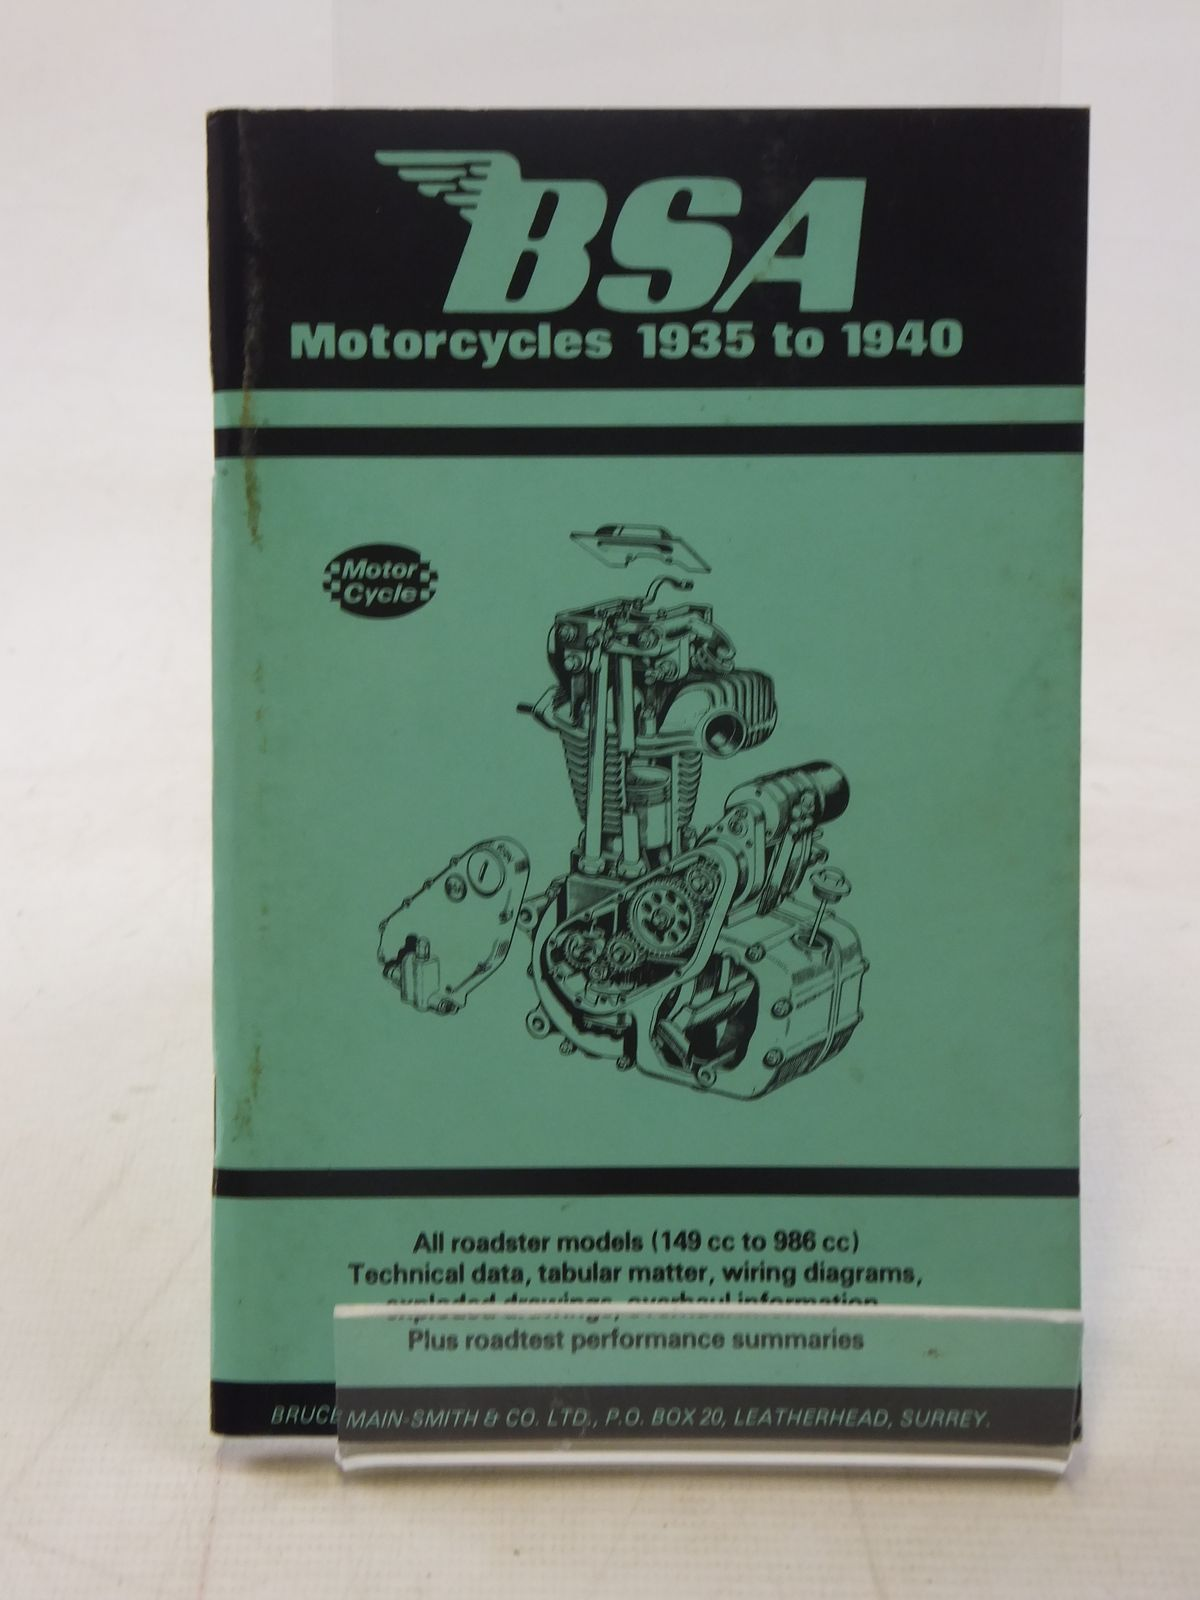 Bsa Motorcycles 1935 To 1940 Stock Code 2117208 Stella Roses Wiring Diagram Photo Of Published By Bruce Main Smith Co